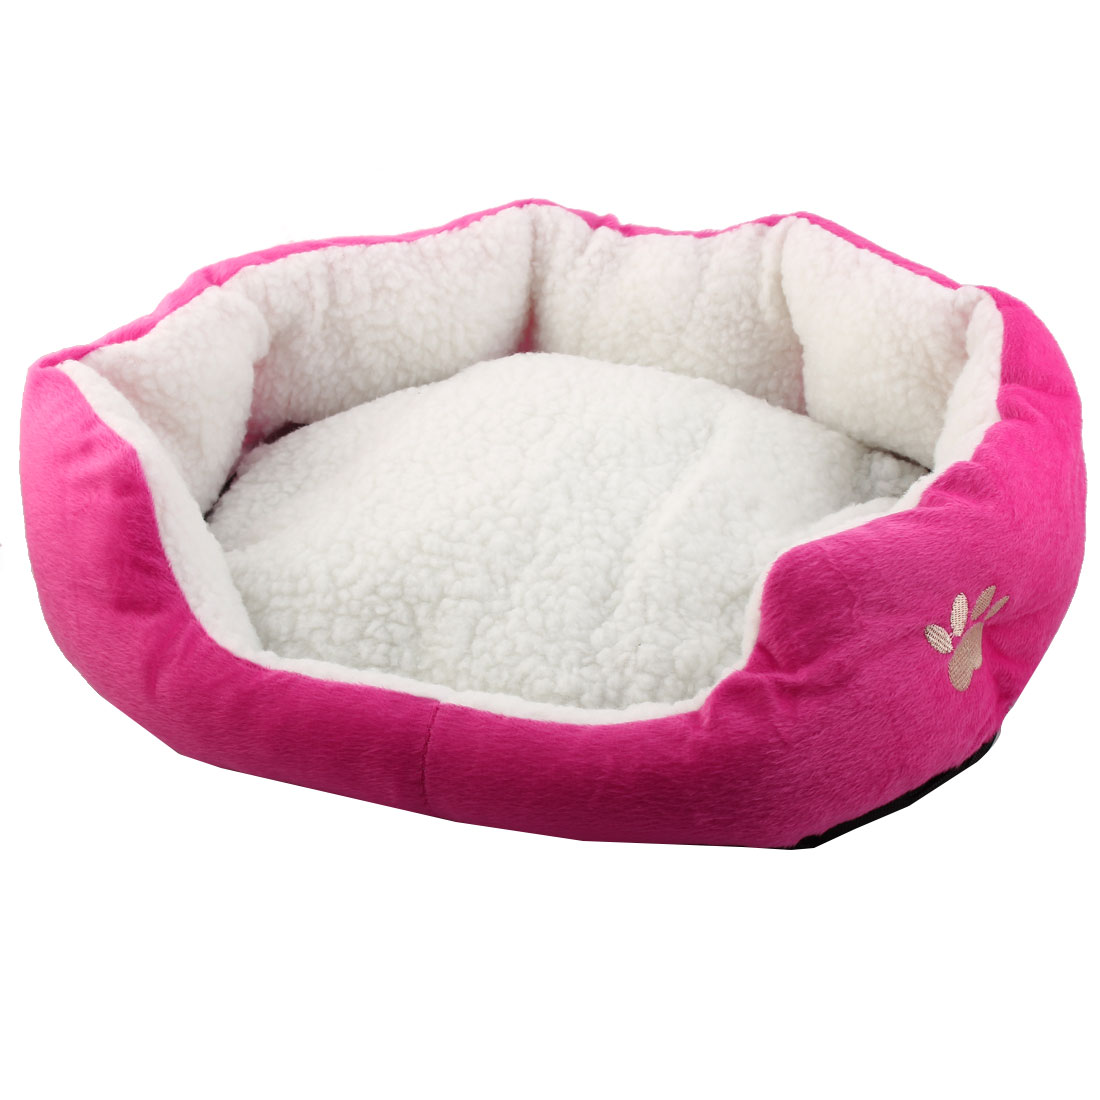 Pet Plush Oval Shape Removable Cushion Nesting Dog Bed Cave Fuchsia 50cm x 40cm